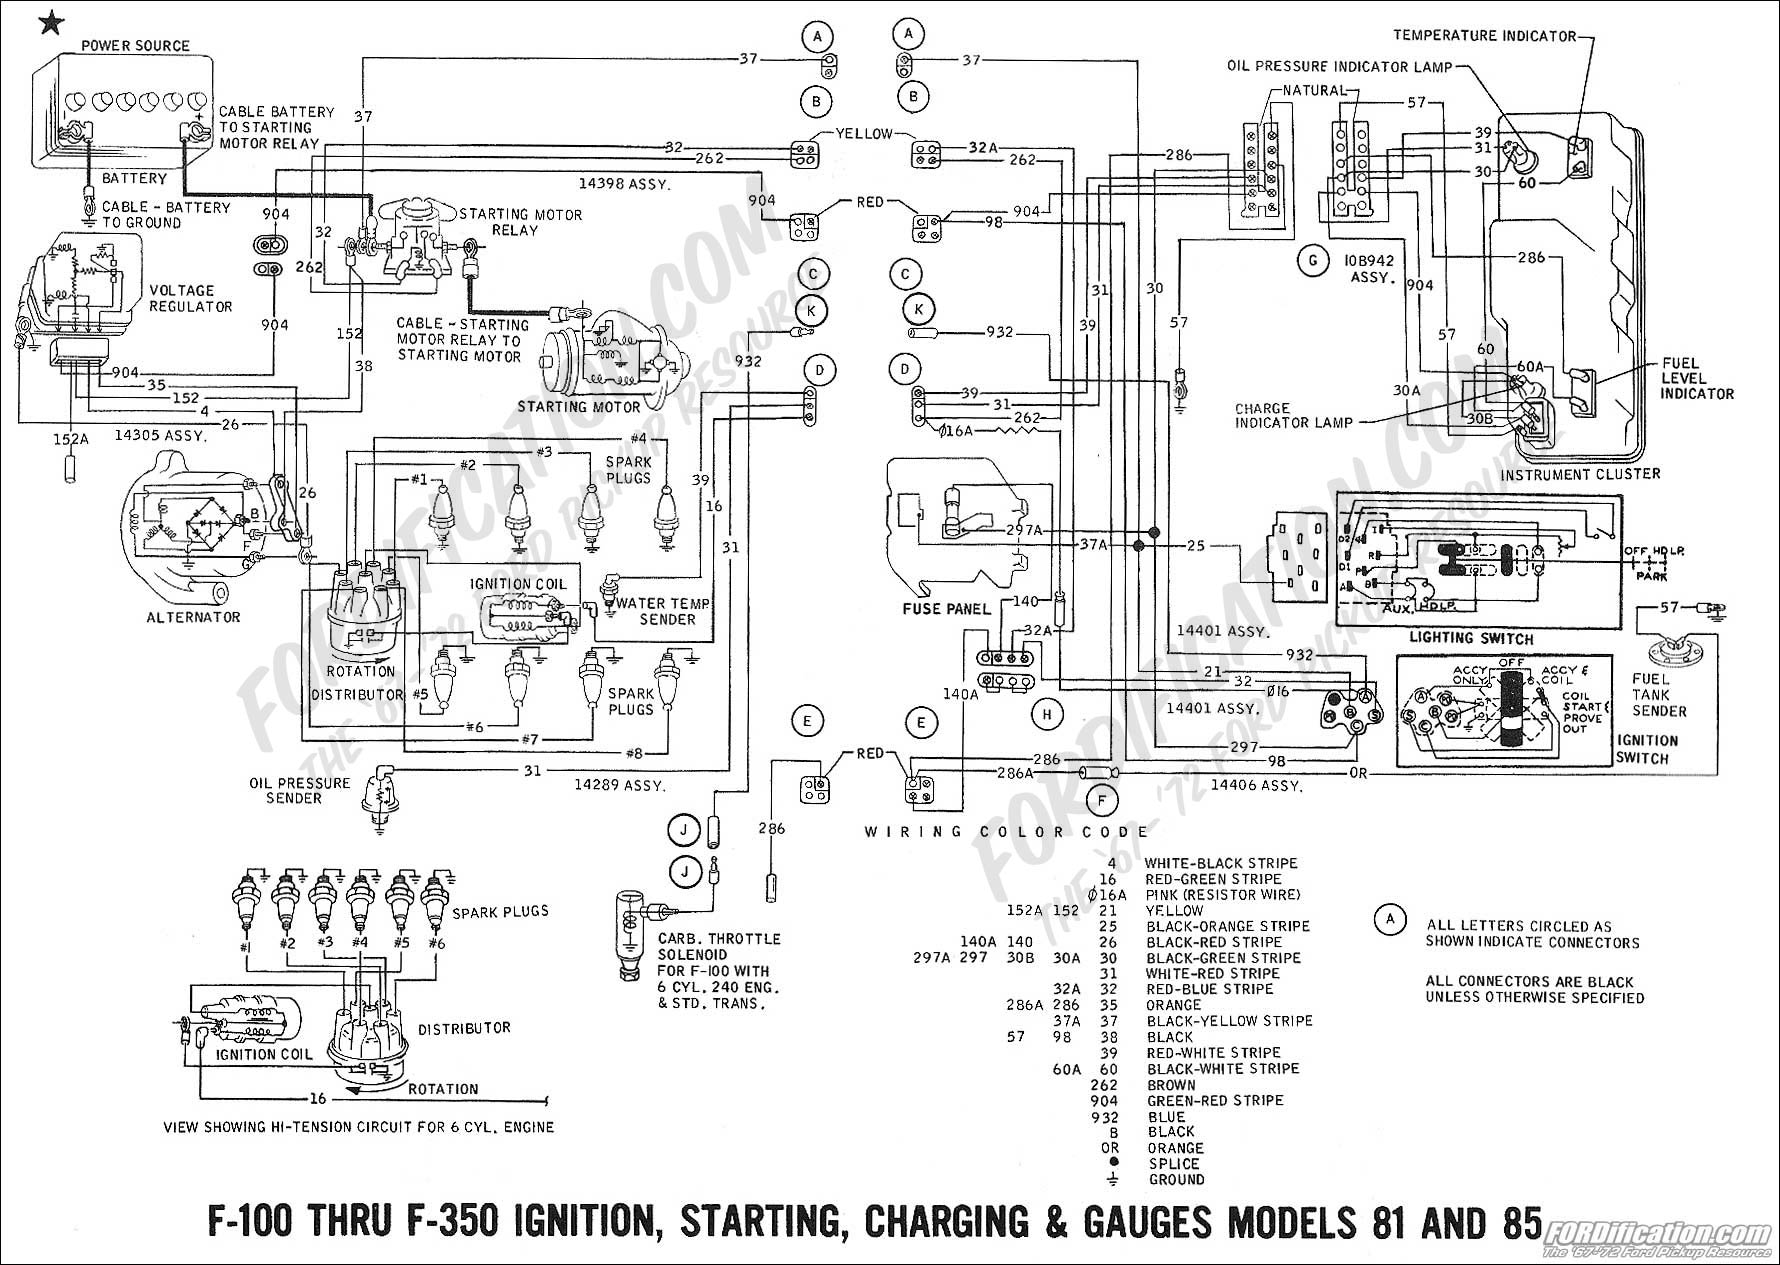 1968 F100 Wiring Harness Manual E Books E4od Mlps Diagram 1970 Ford Truck Wire Diagram1970